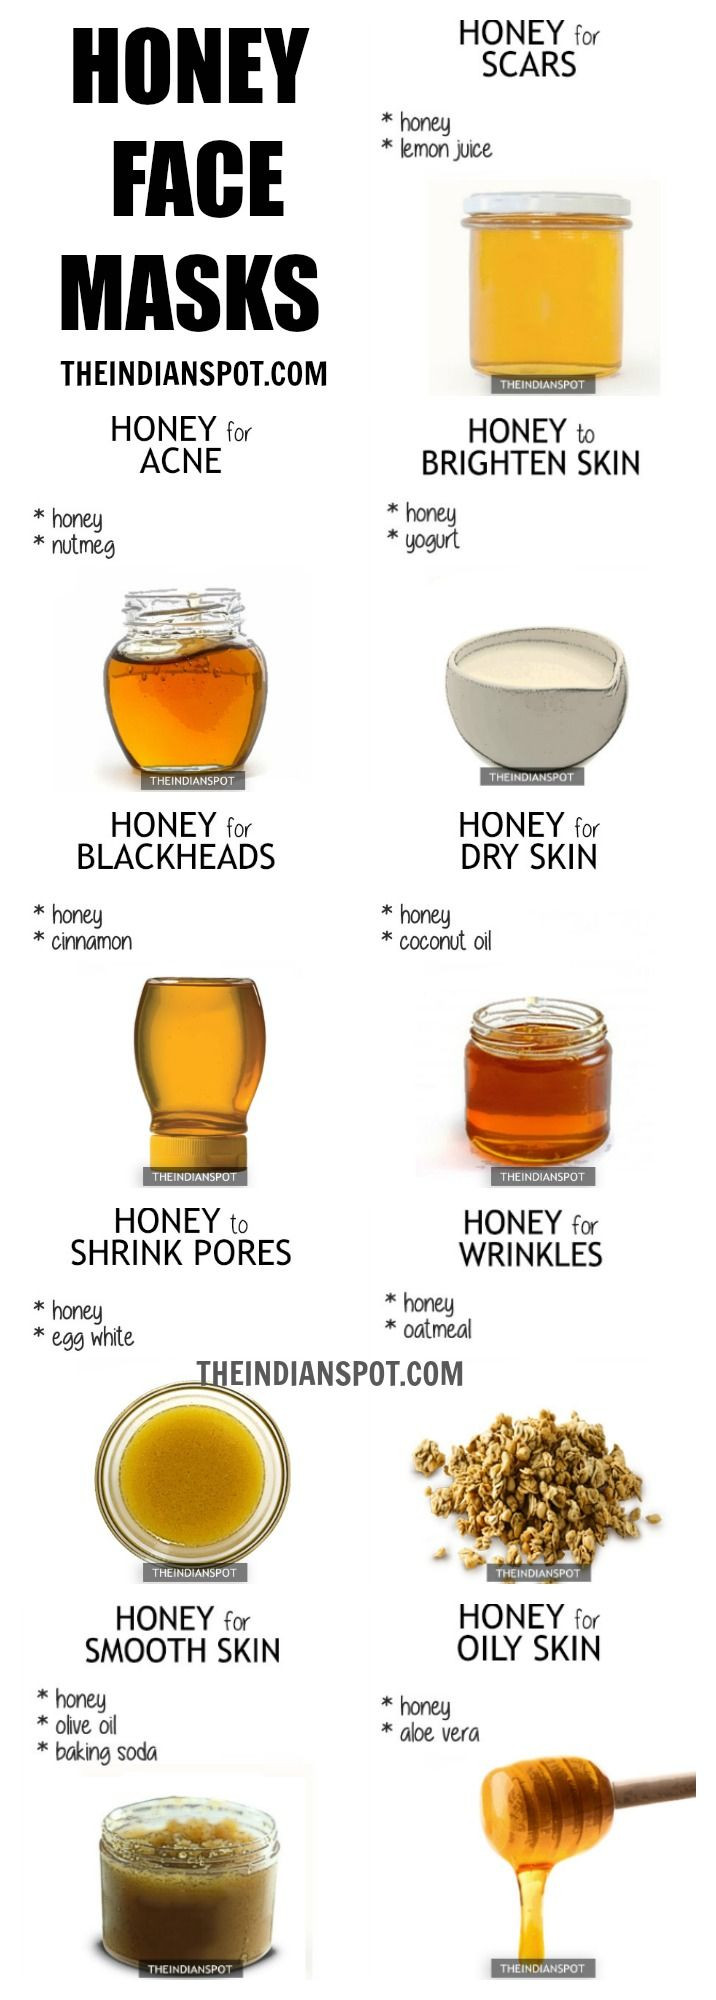 Best ideas about DIY Face Mask With Honey . Save or Pin Best 25 Natural face masks ideas on Pinterest Now.